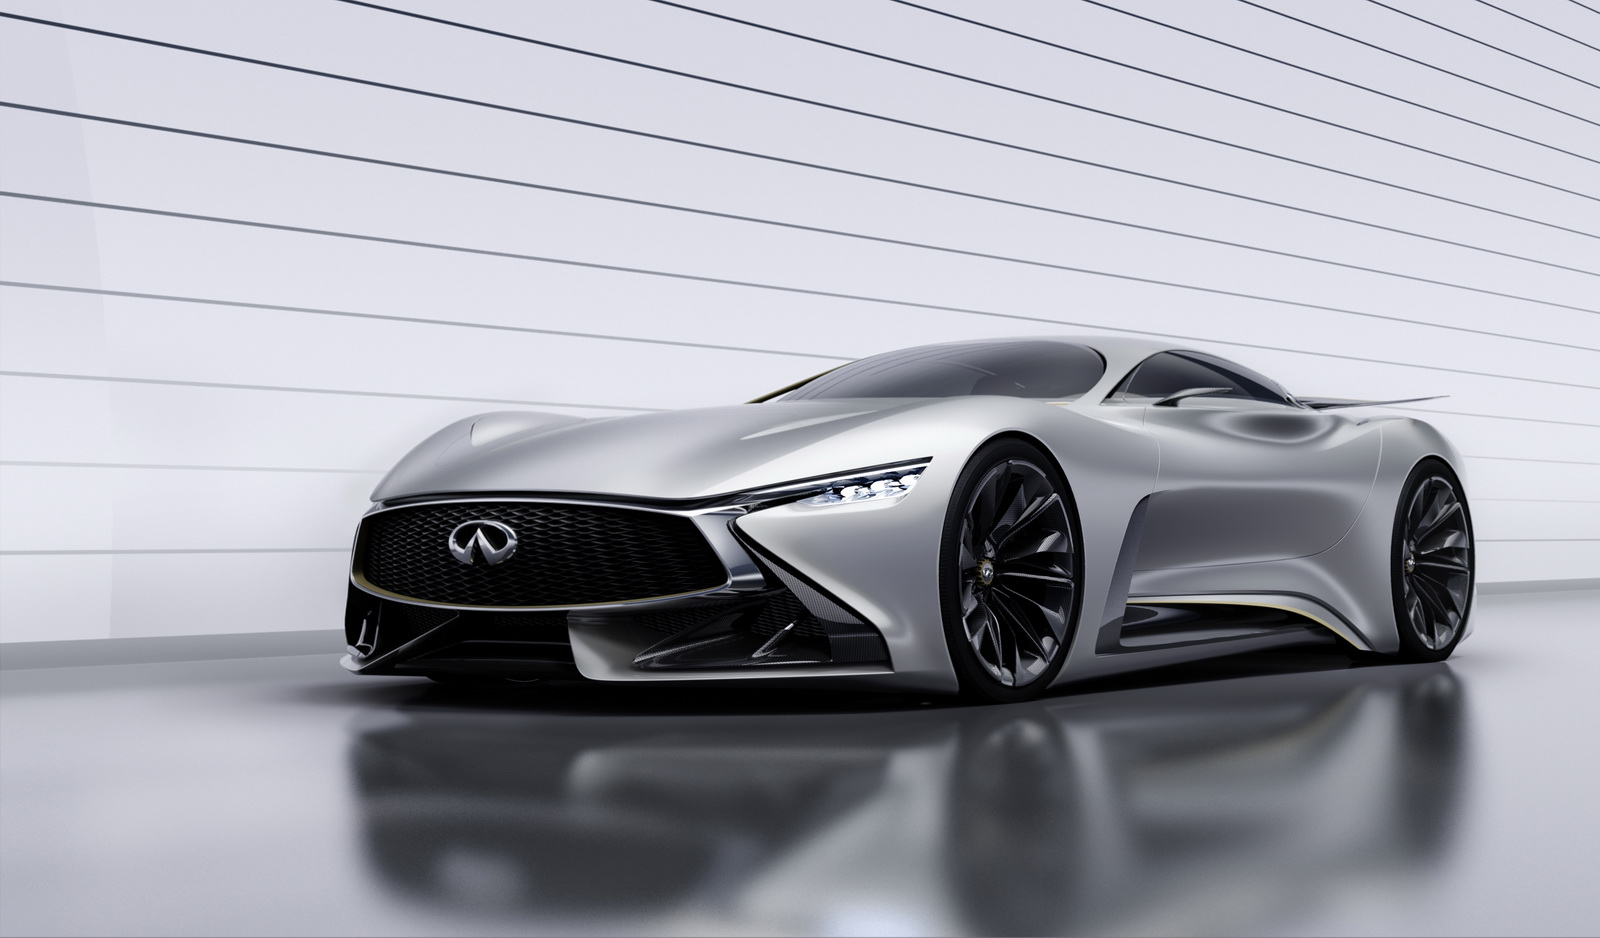 2016-InfinitiVisionGT-02